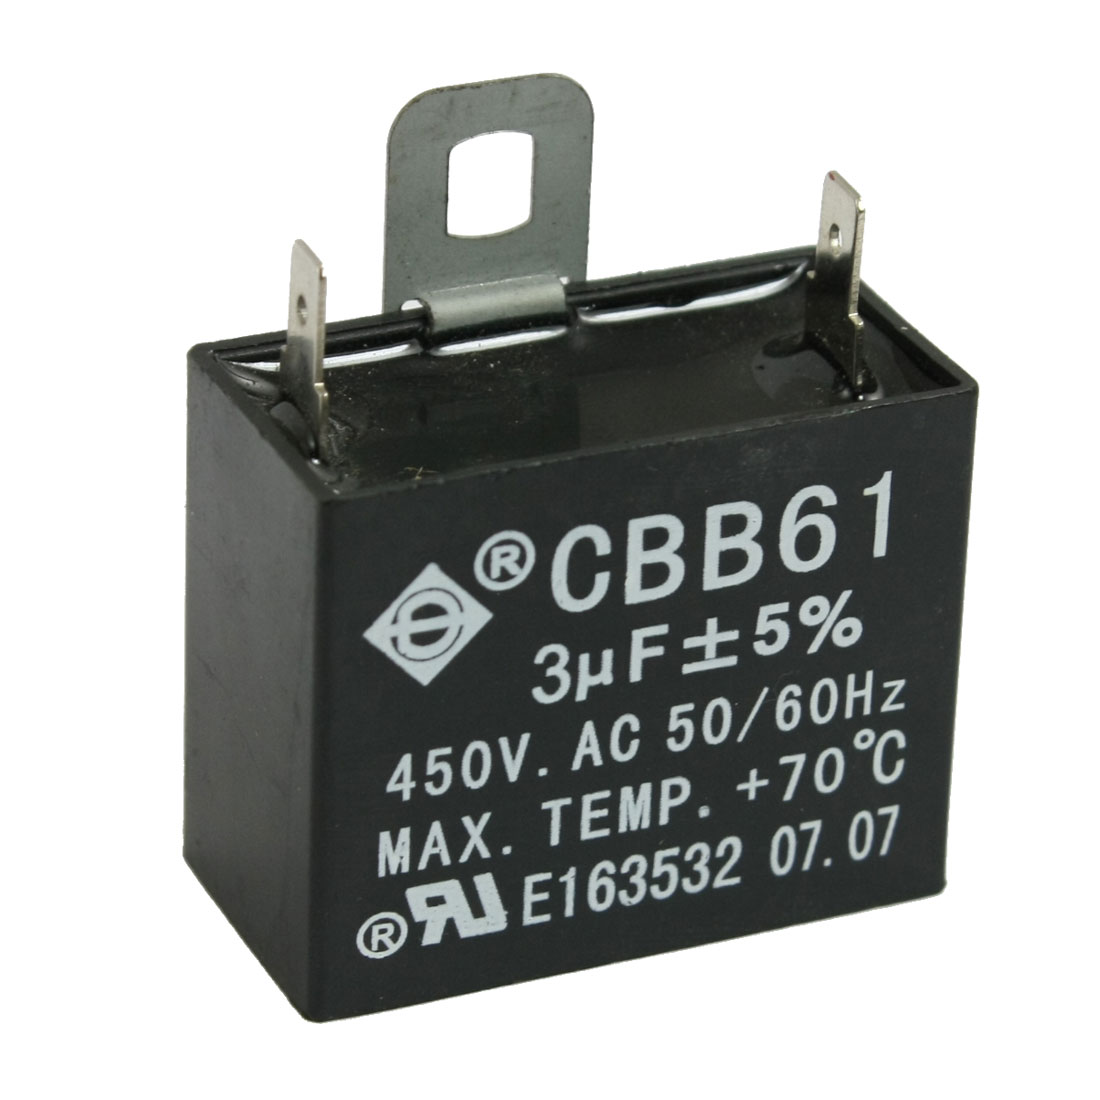 CBB61 450V 3uF 50/60Hz Polypropylene Film Motor Run Capacitor